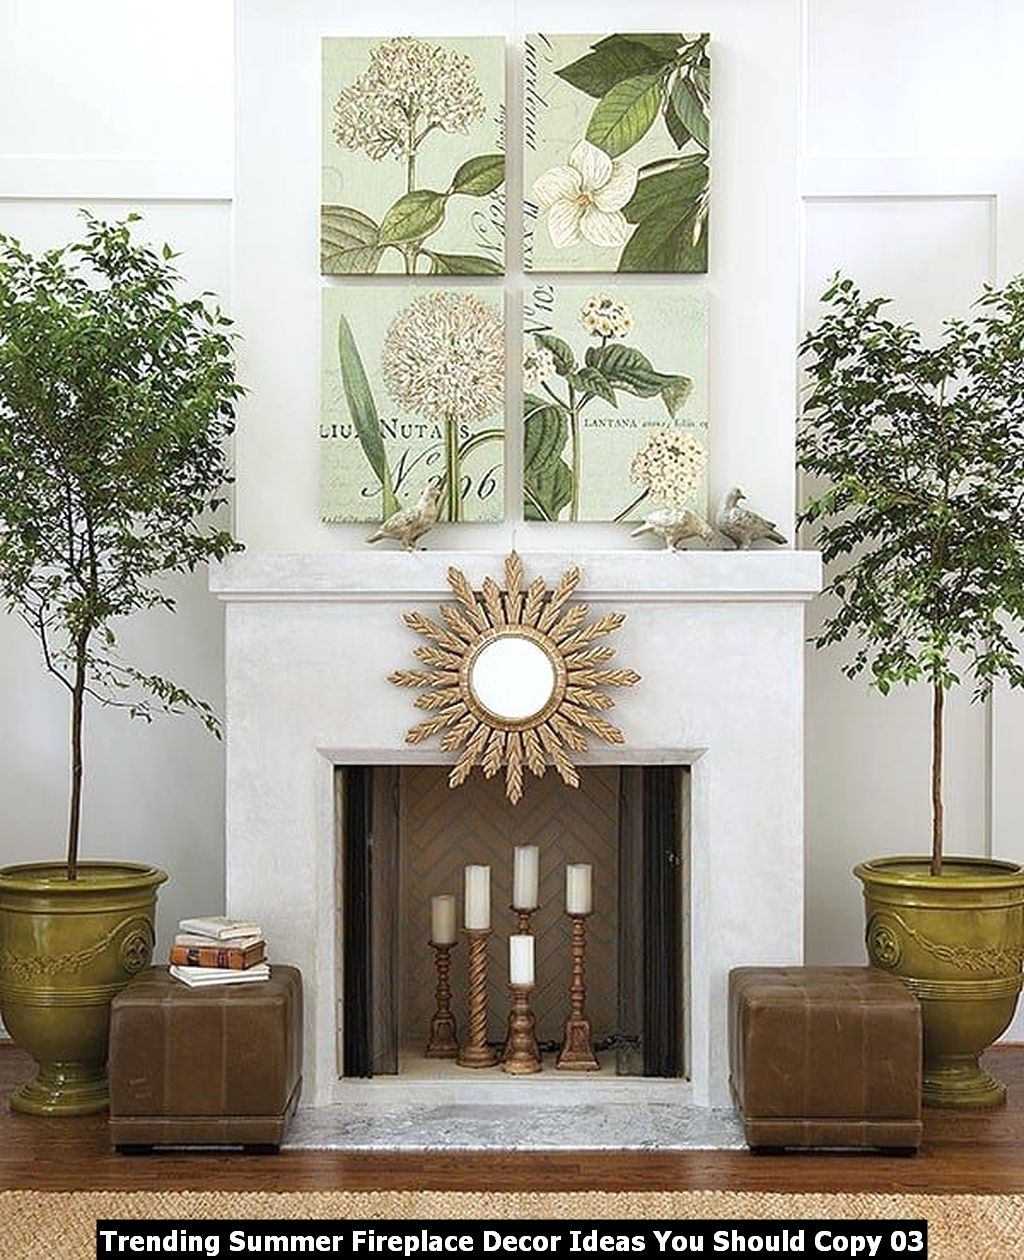 Trending Summer Fireplace Decor Ideas You Should Copy 03